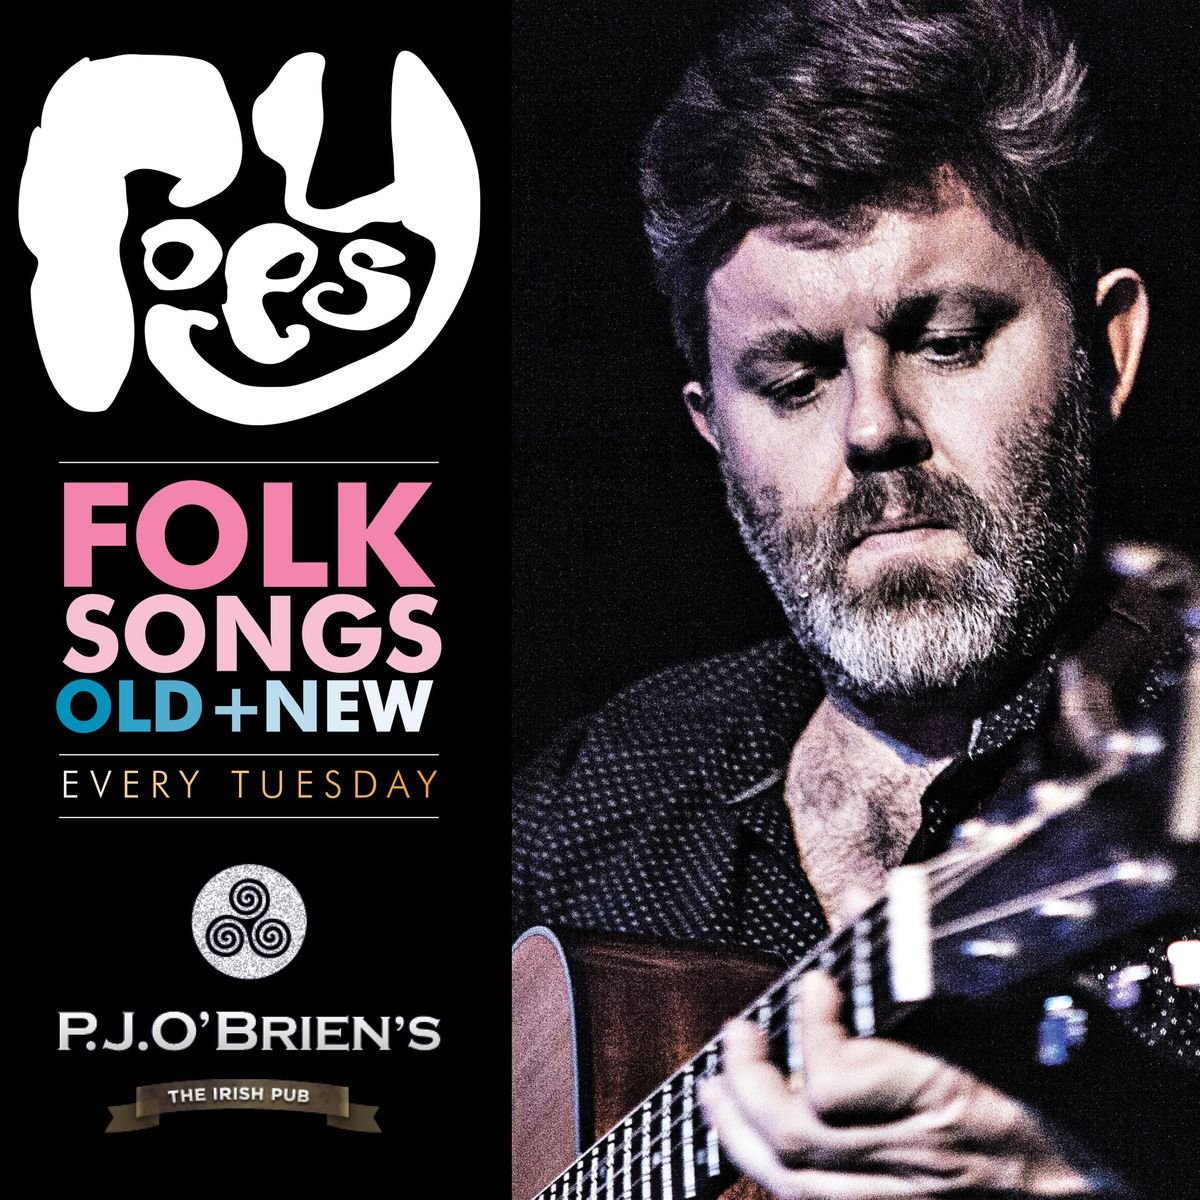 Live Music Tuesdays  P.J.OBriens Southbank  Featuring Roesy